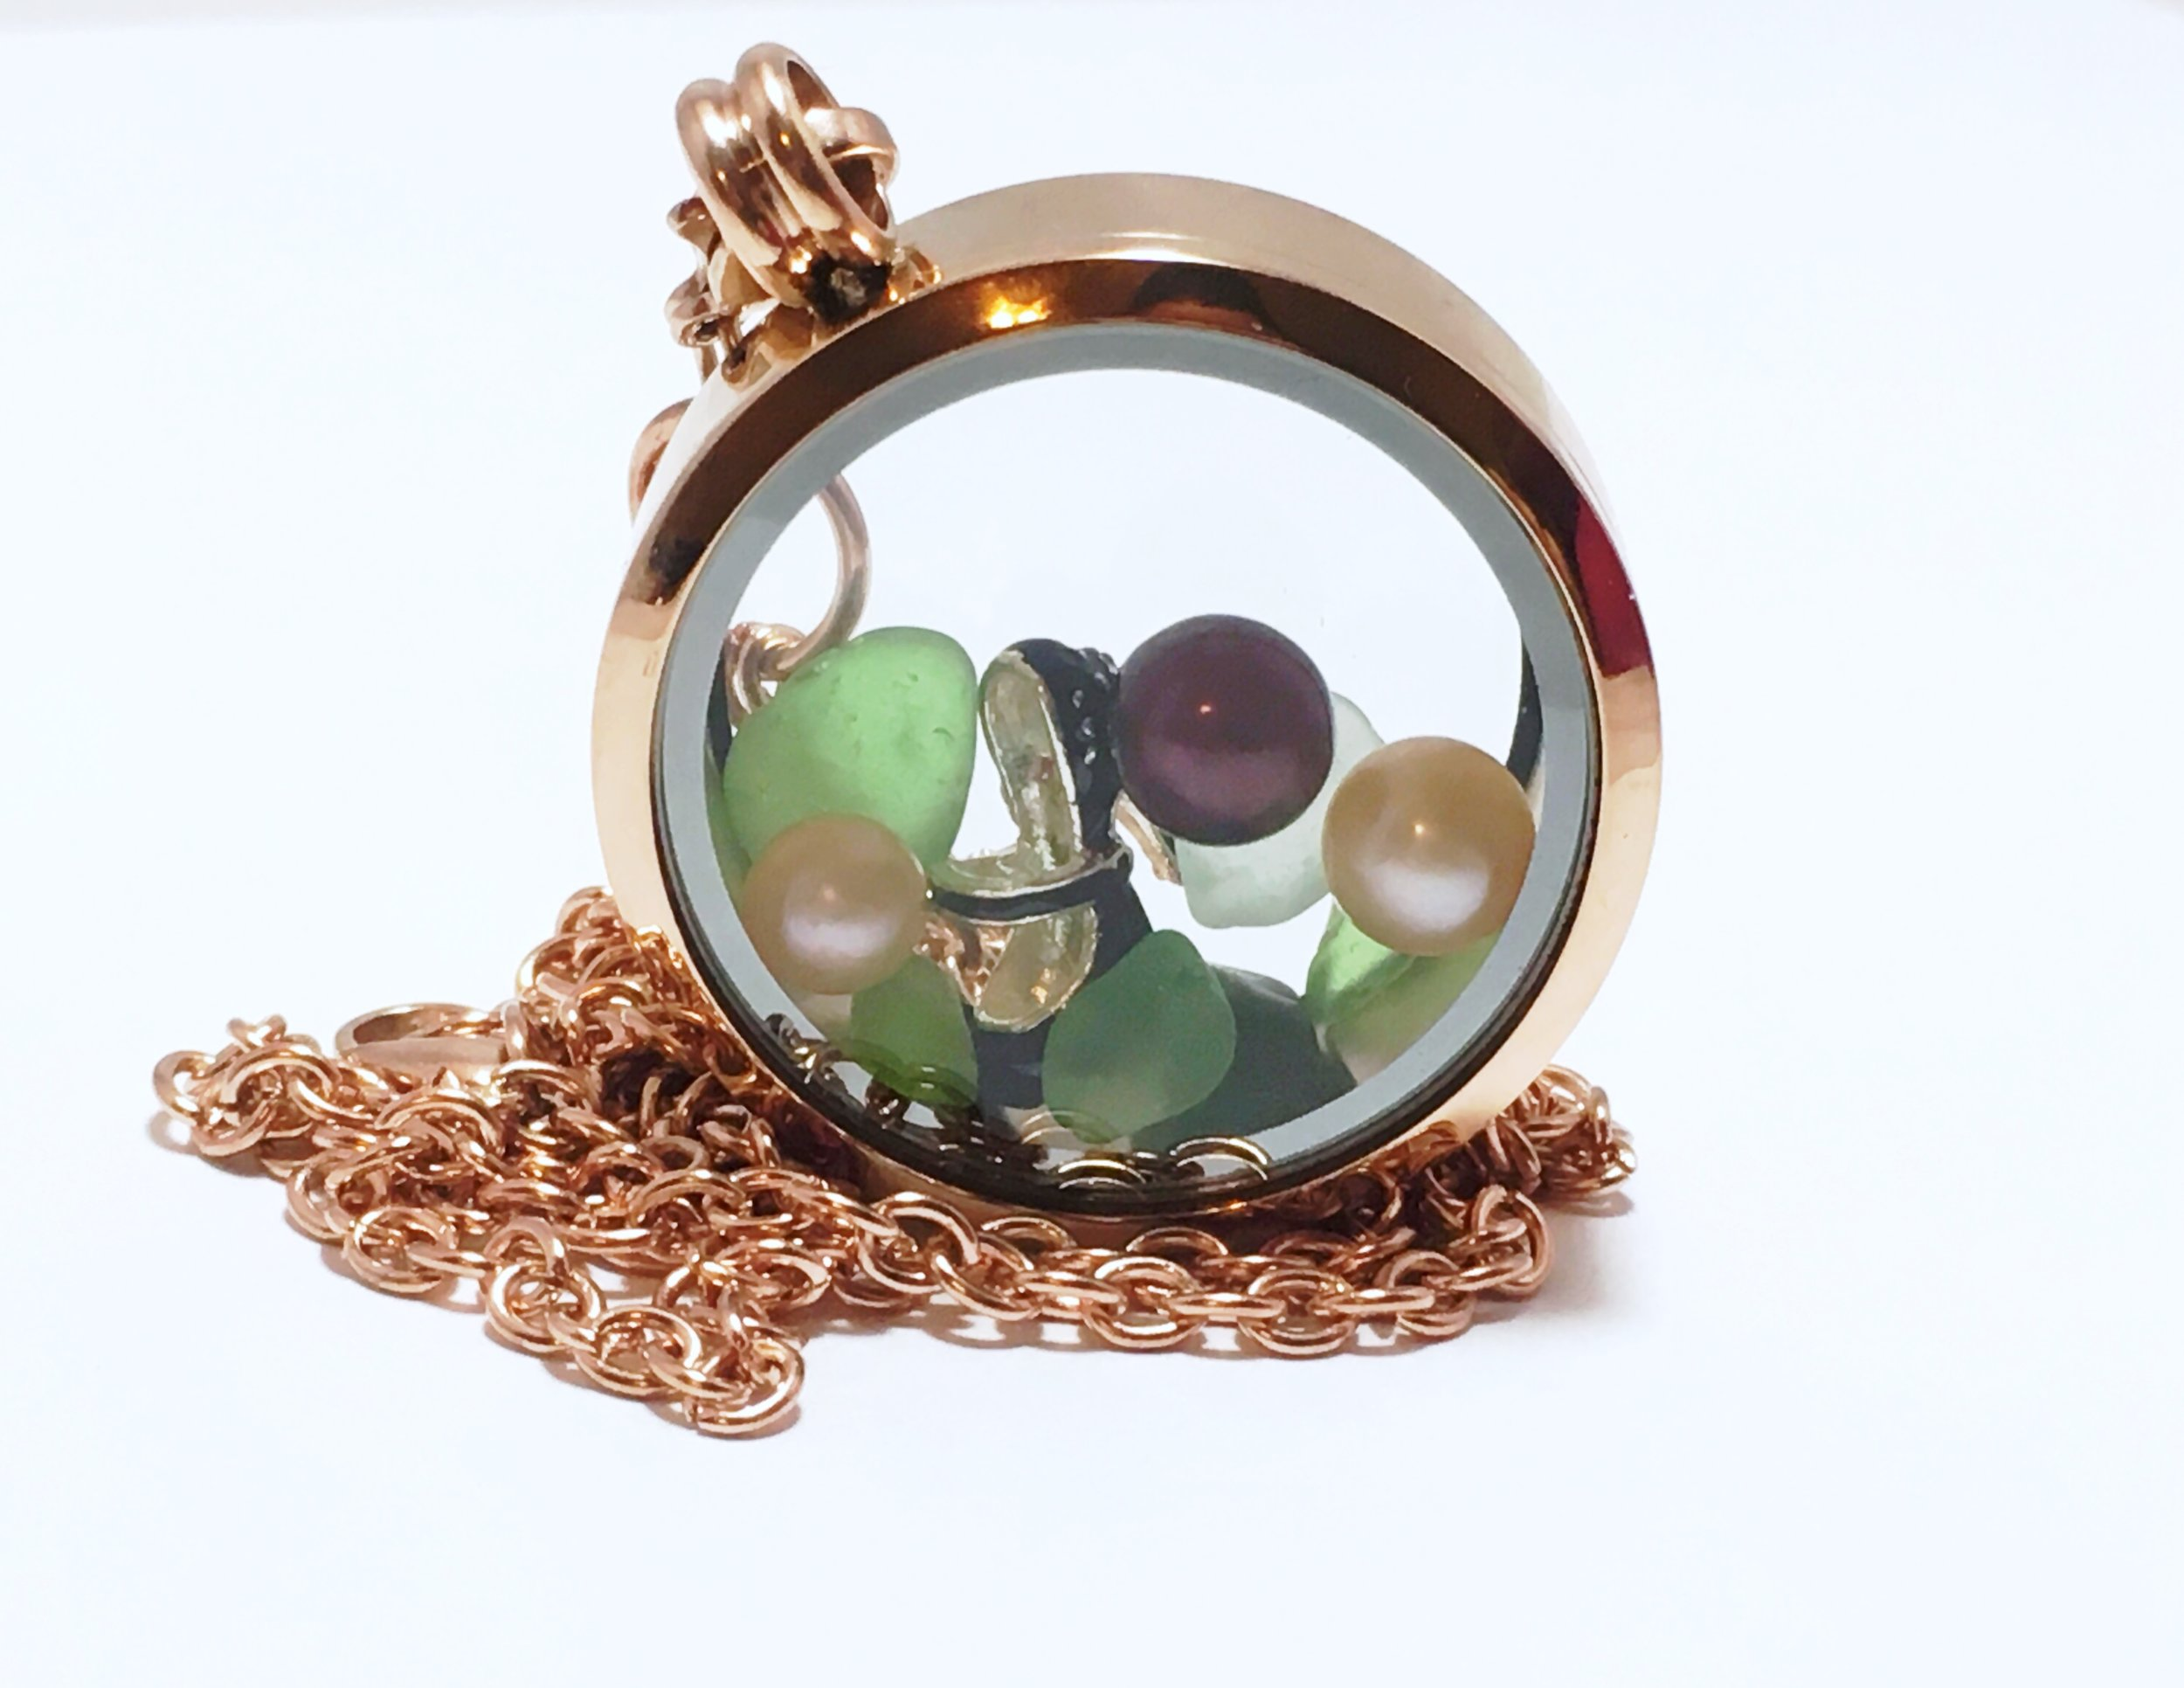 Lockets and Cages - Want To Show Off Your Pearls?Lockets and Cages Are A Perfect WayTo Do Just That!